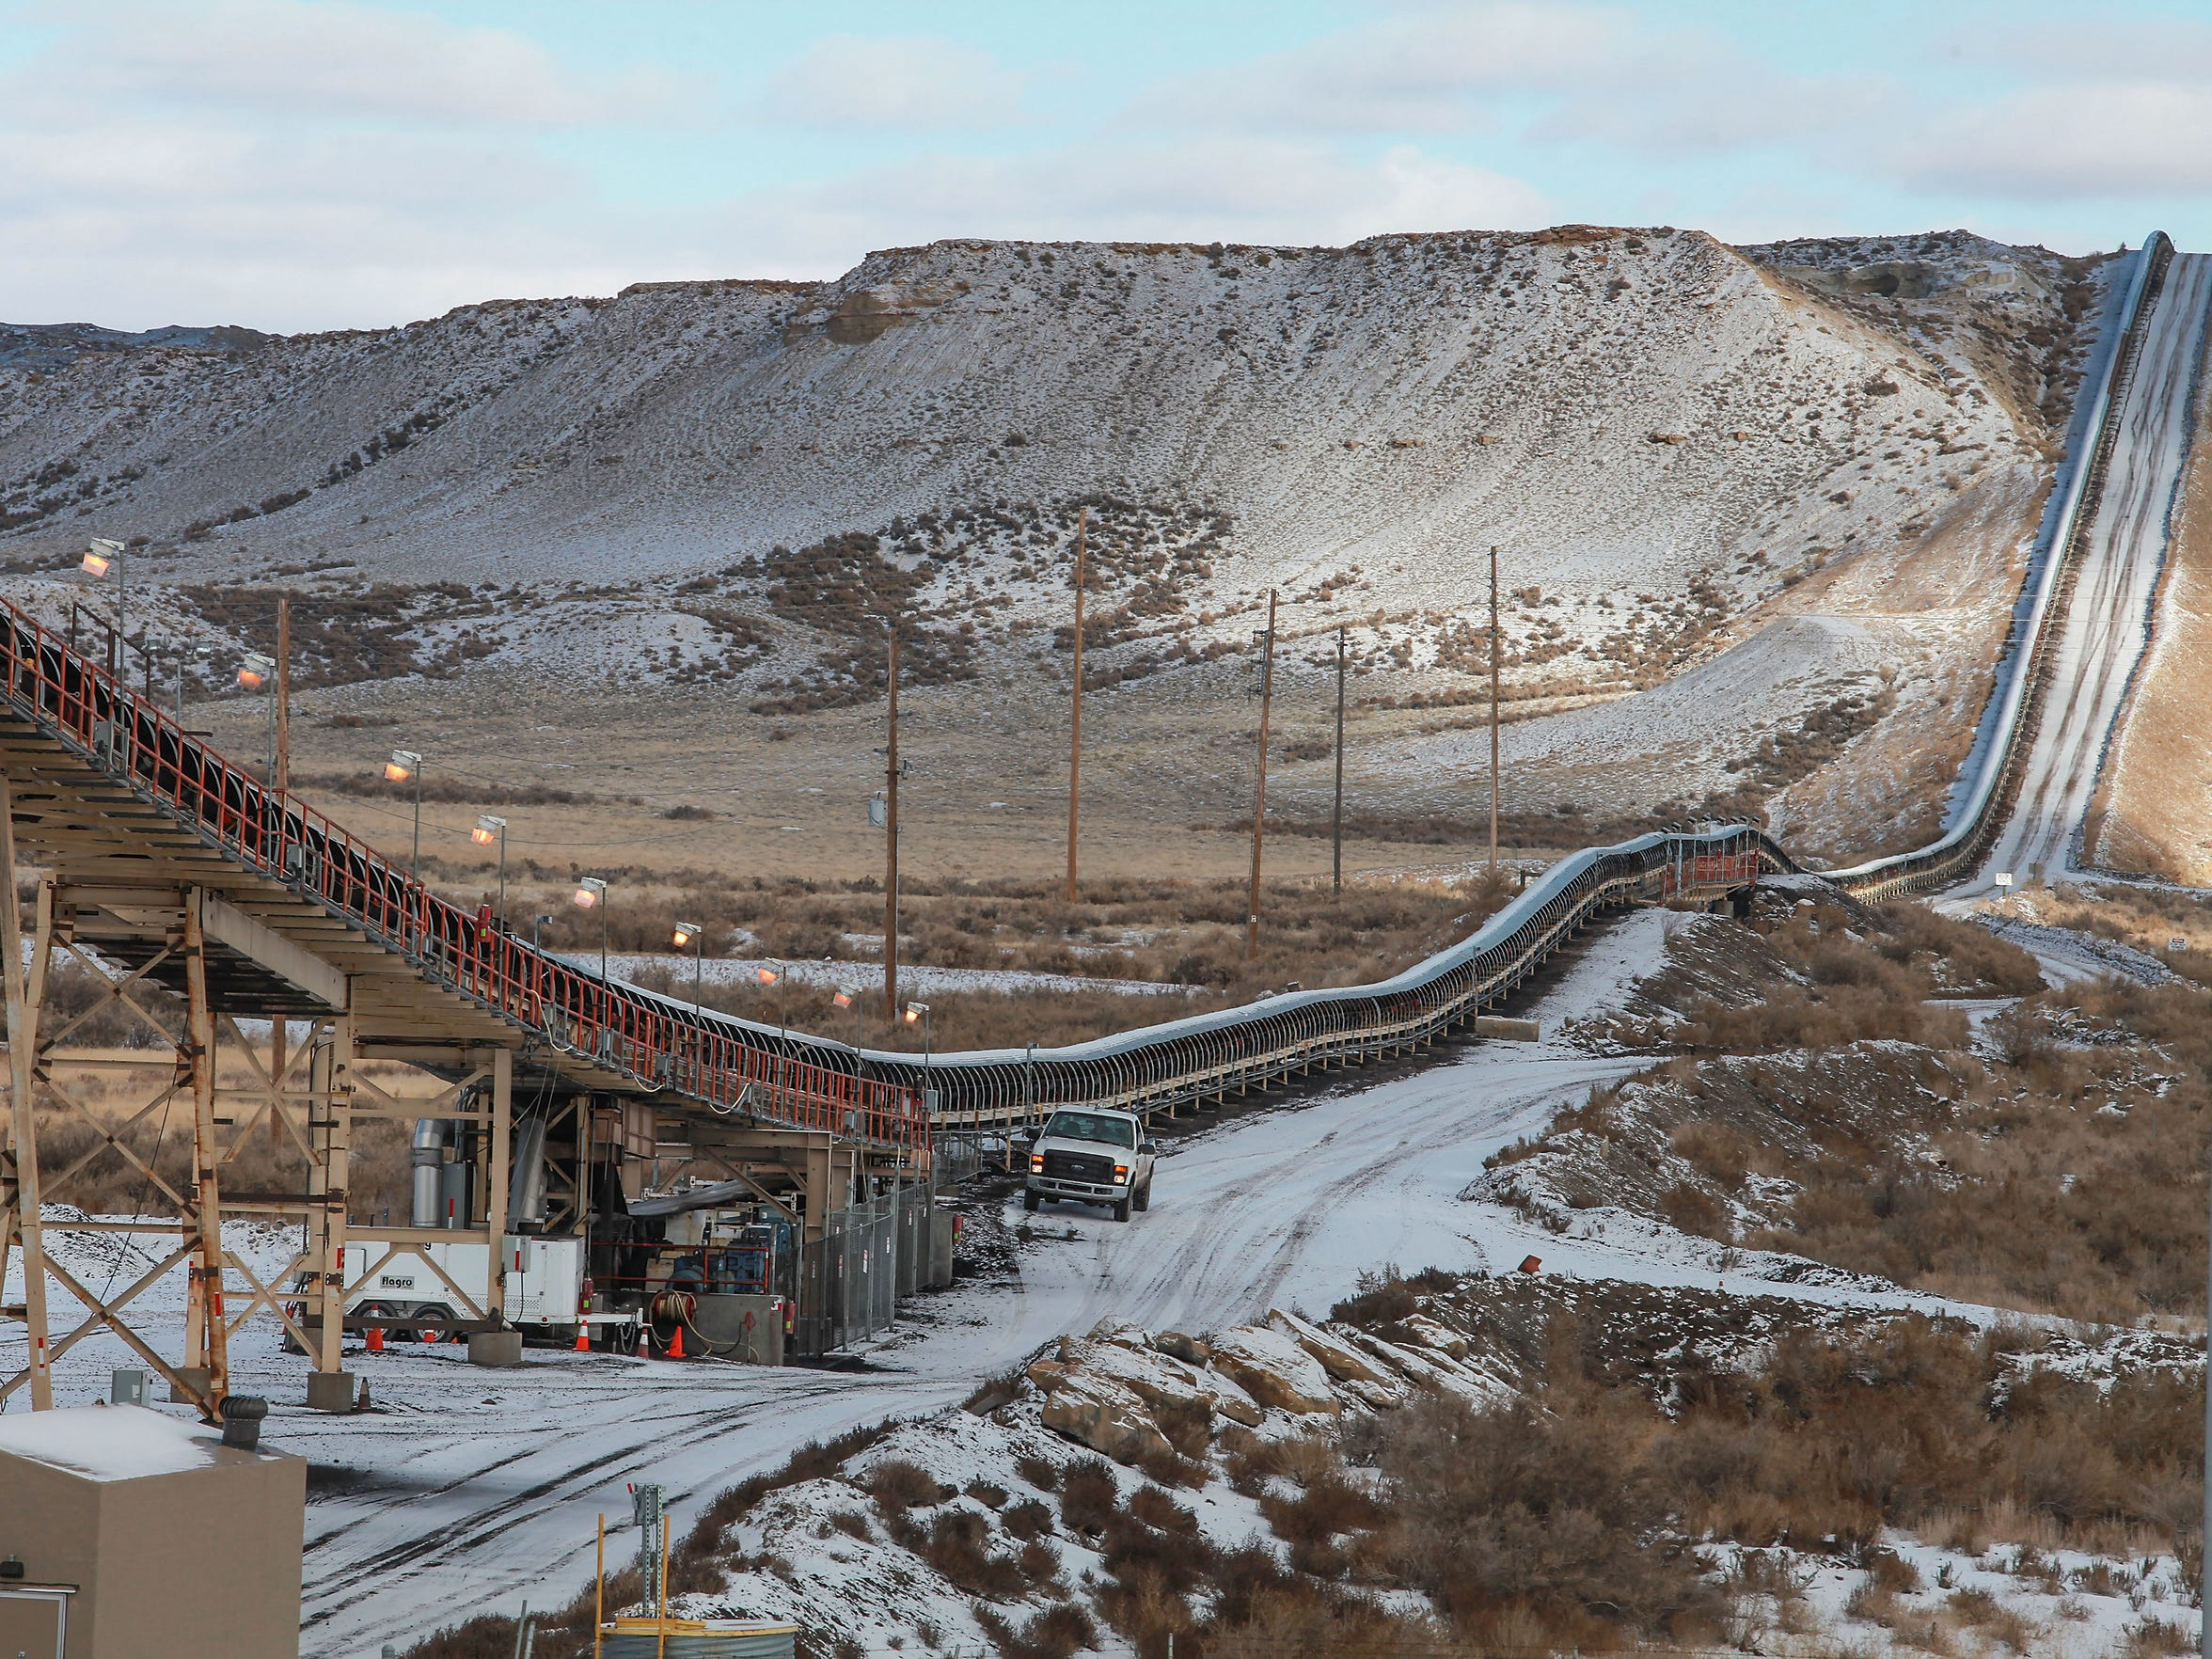 A long conveyor belt delivers coal from a nearby mine